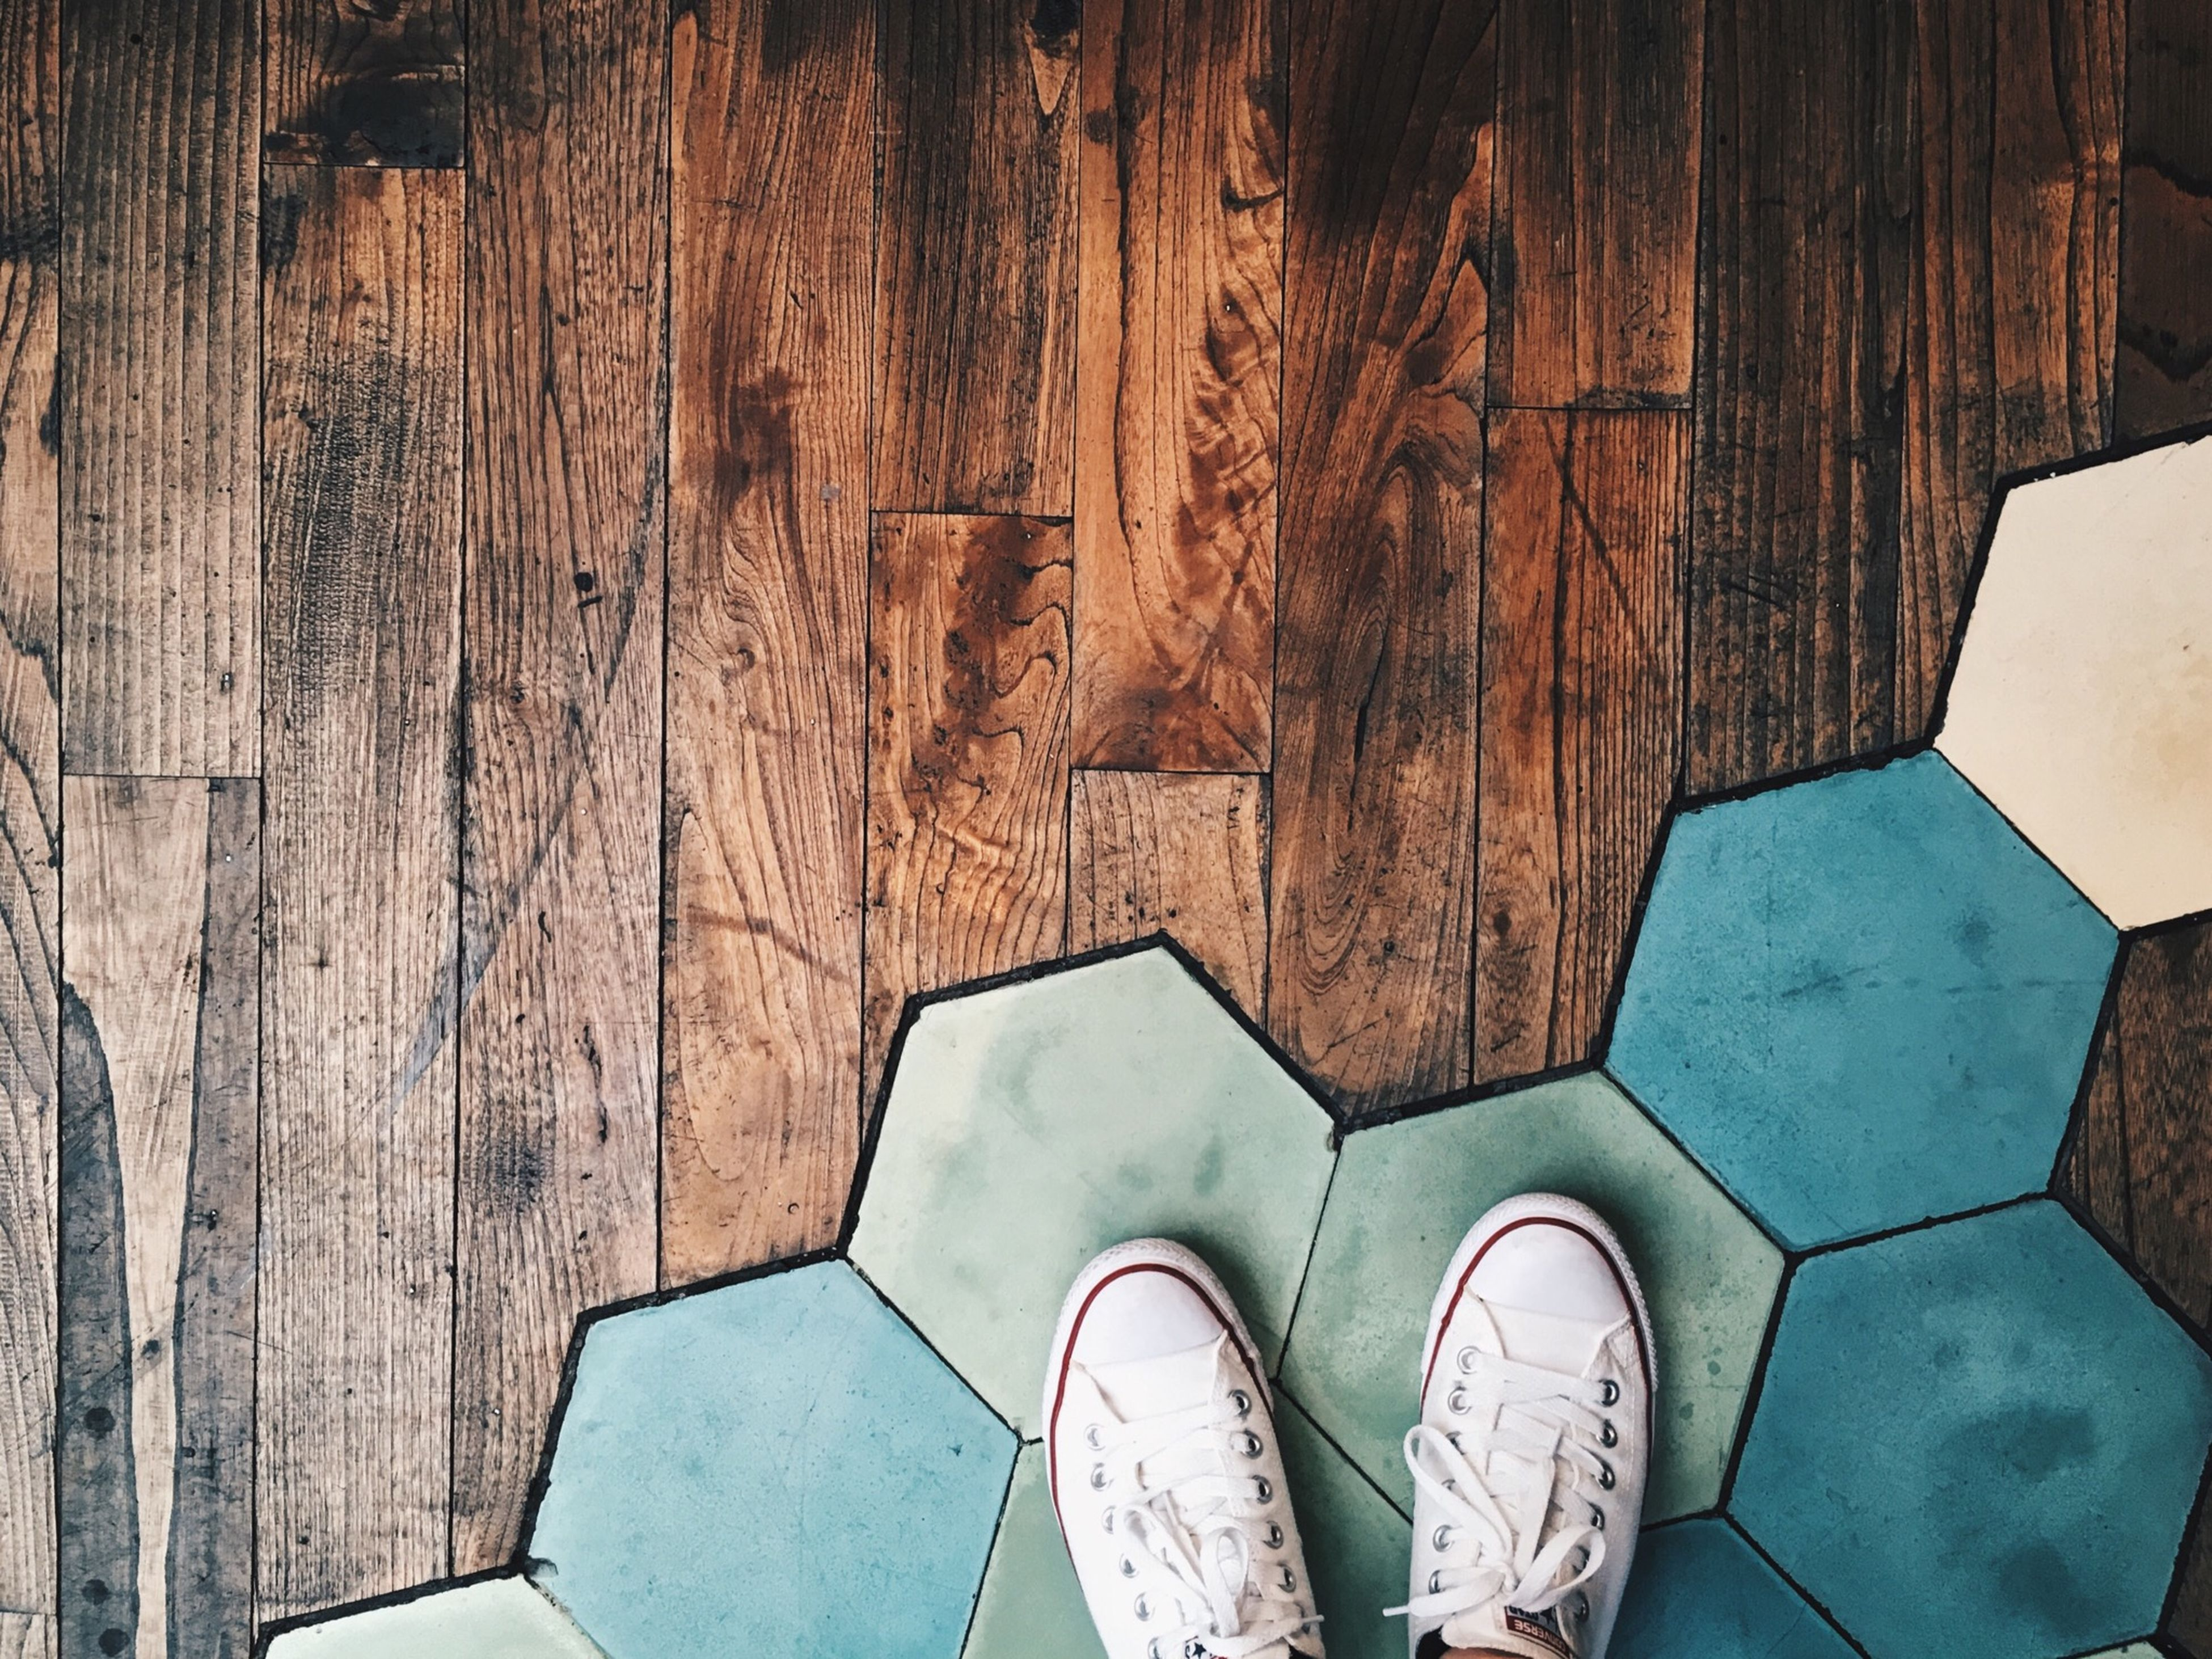 indoors, wood - material, shoe, low section, directly above, high angle view, pattern, built structure, wooden, part of, personal perspective, architecture, design, wood, person, old, arch, footwear, day, wall - building feature